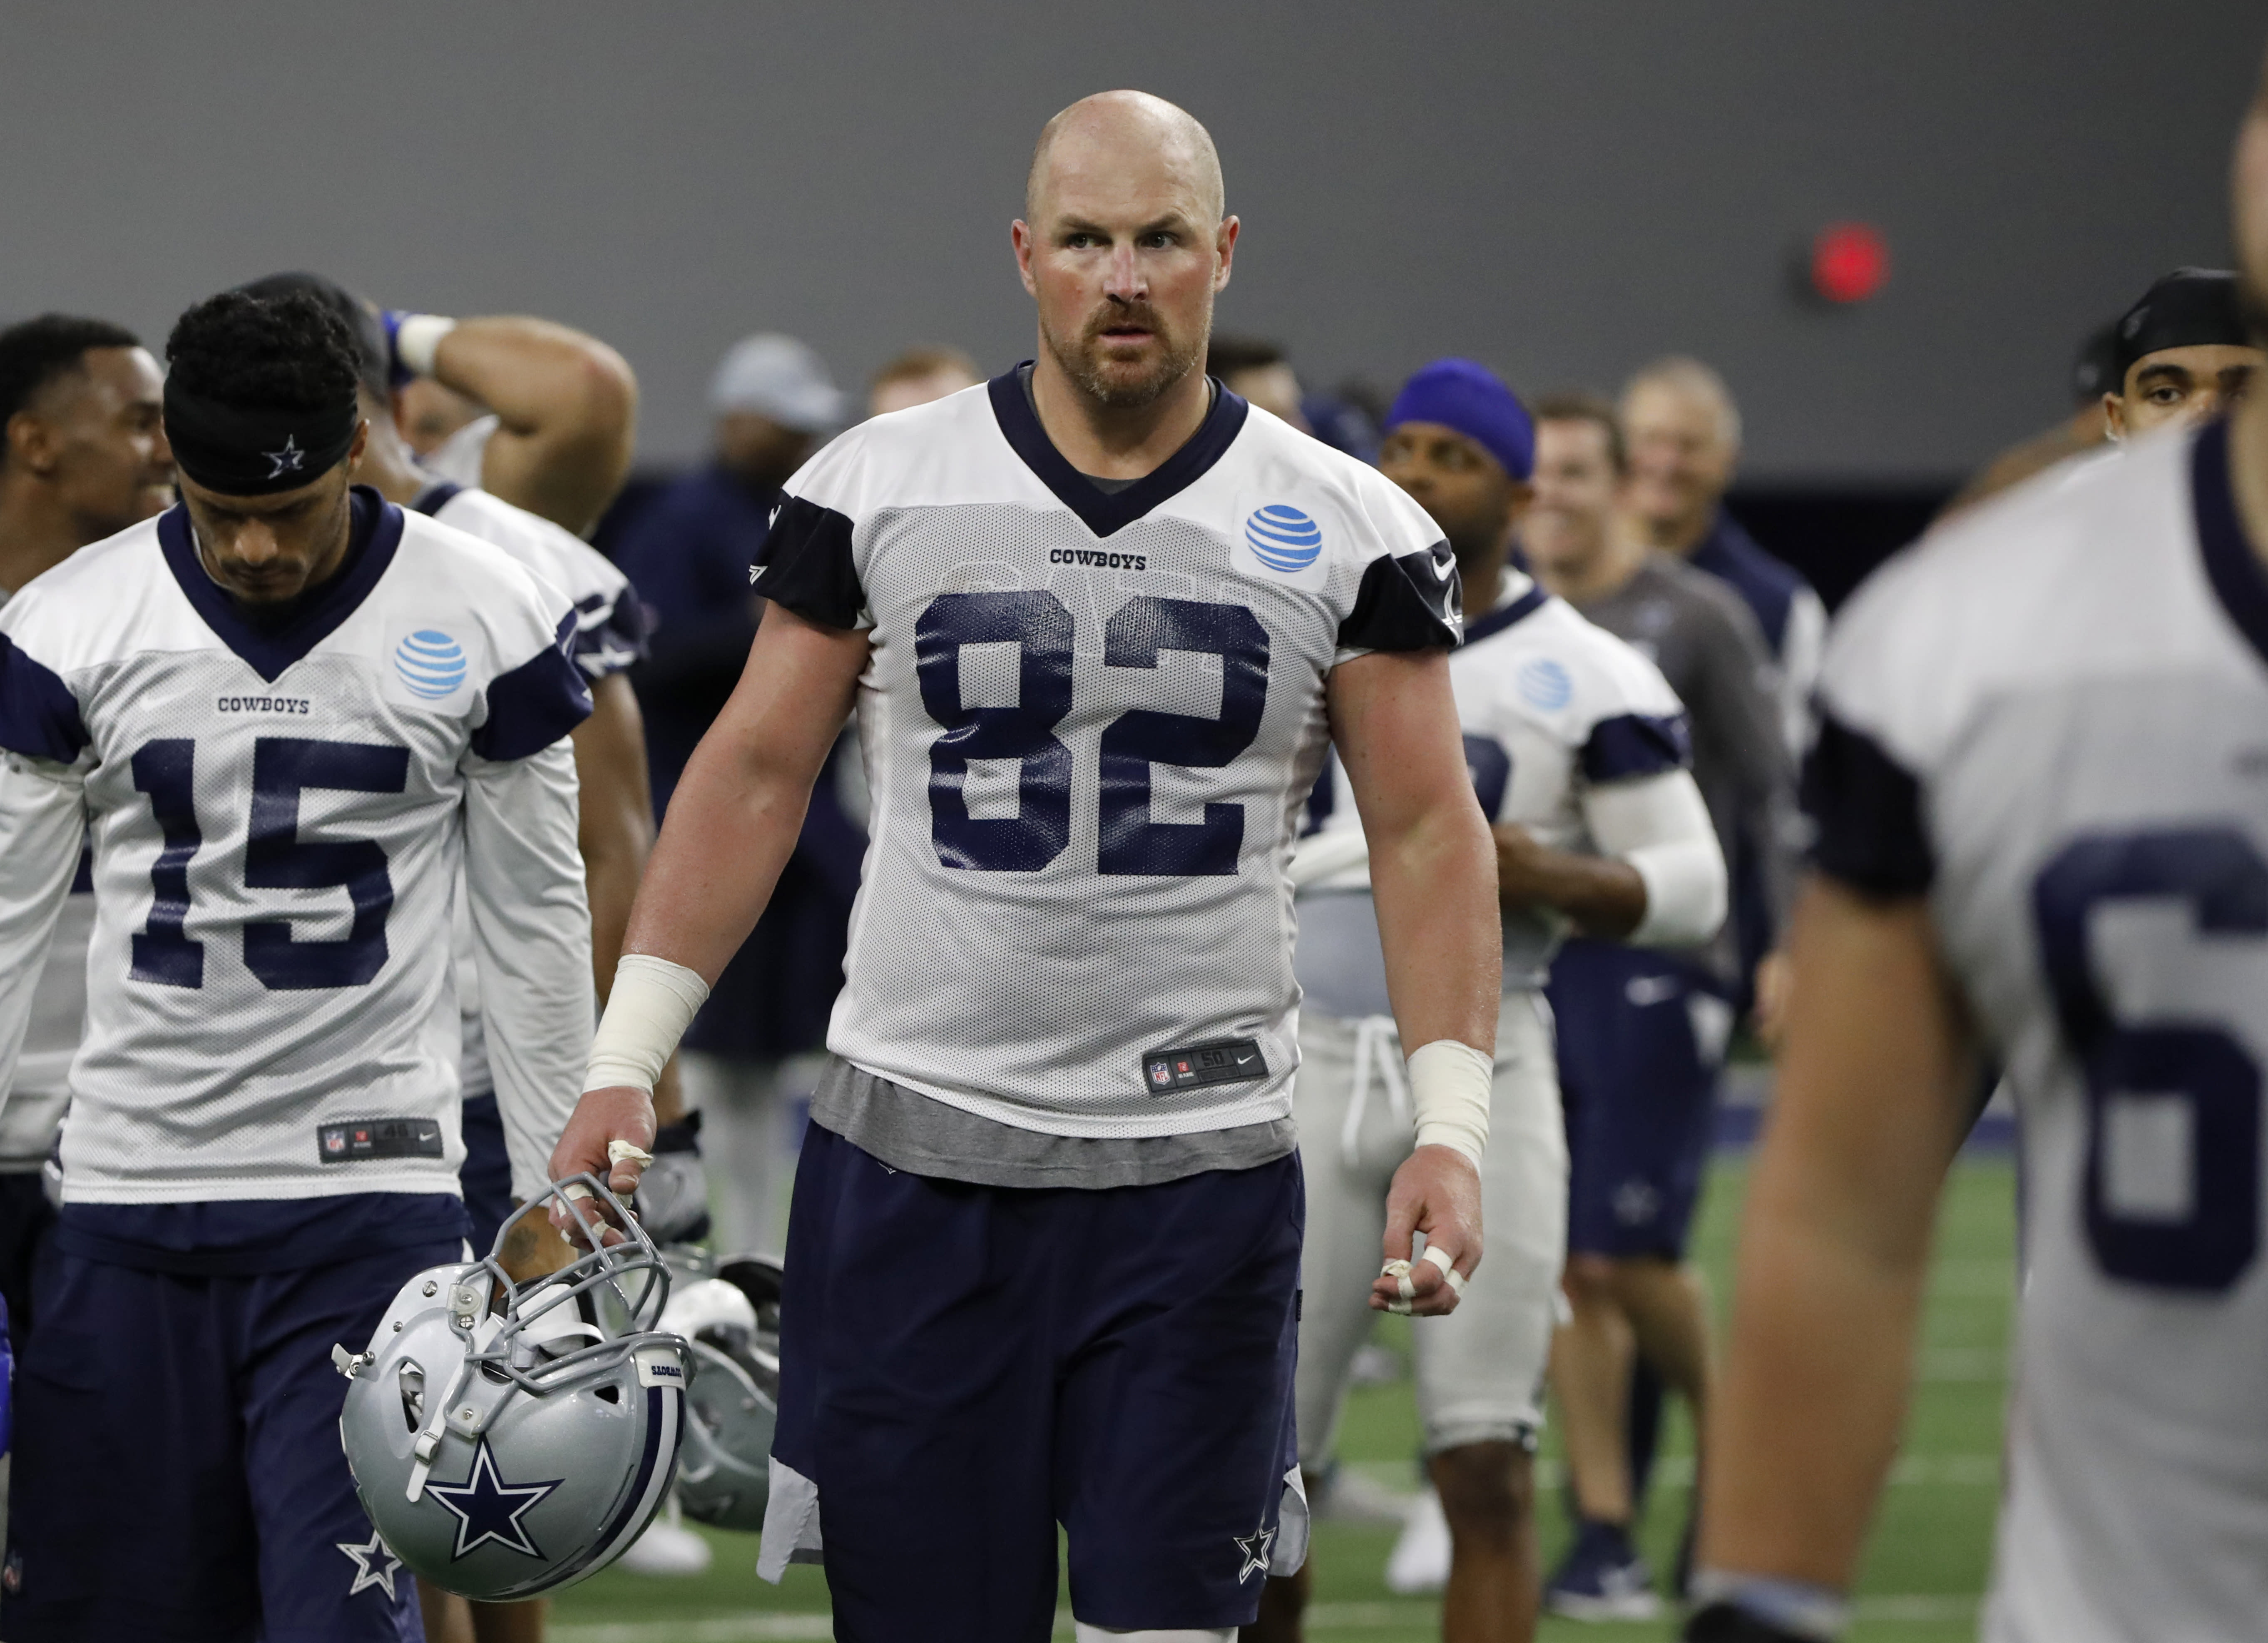 905d4b1a60f NFL: Jason Witten trying to avoid training camp roommate